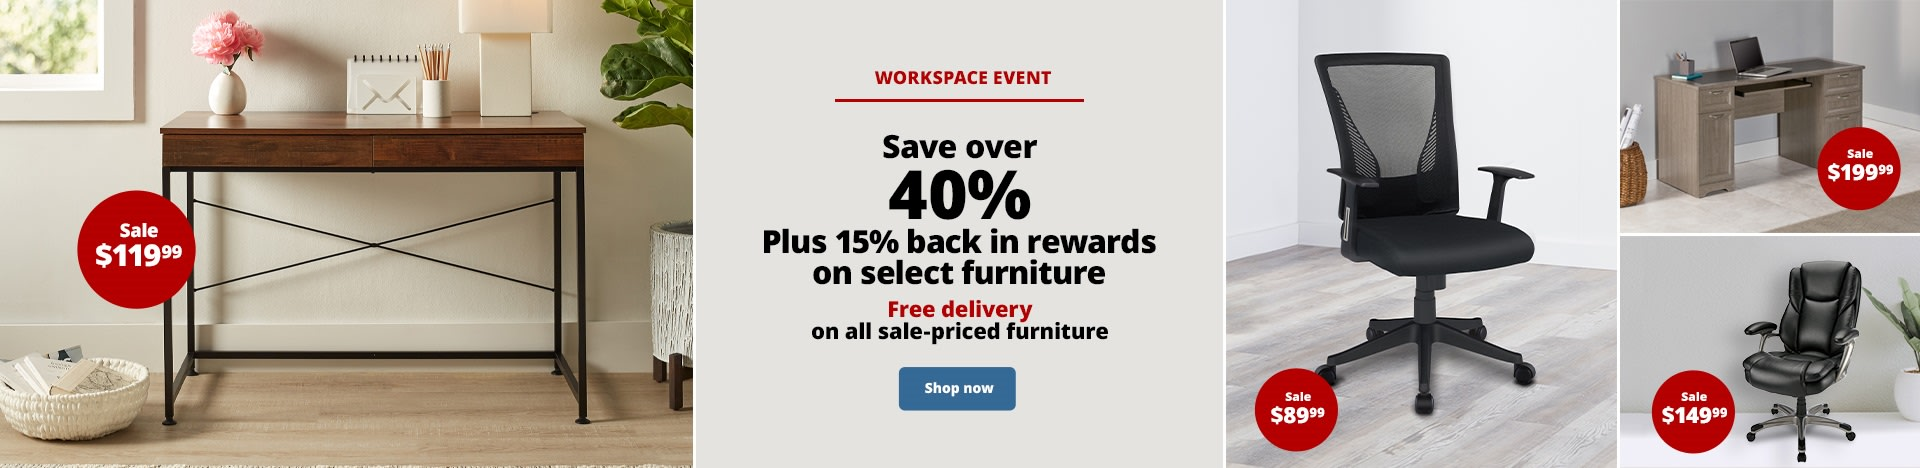 Save over 40% Plus 15% back in rewards on select furniture